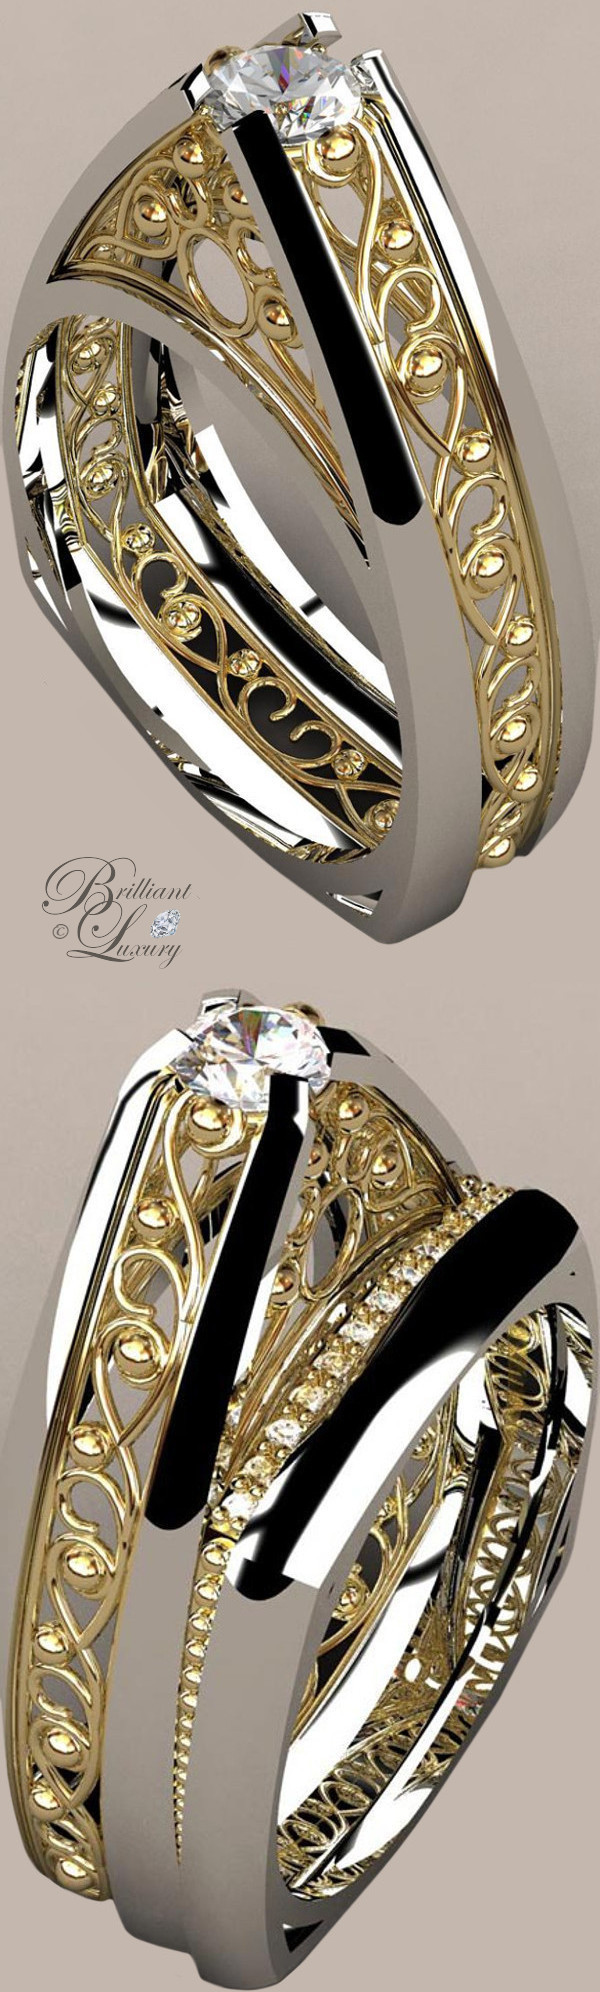 Greg Neeley Bridal Jewelry Pinnacle Wedding Rings